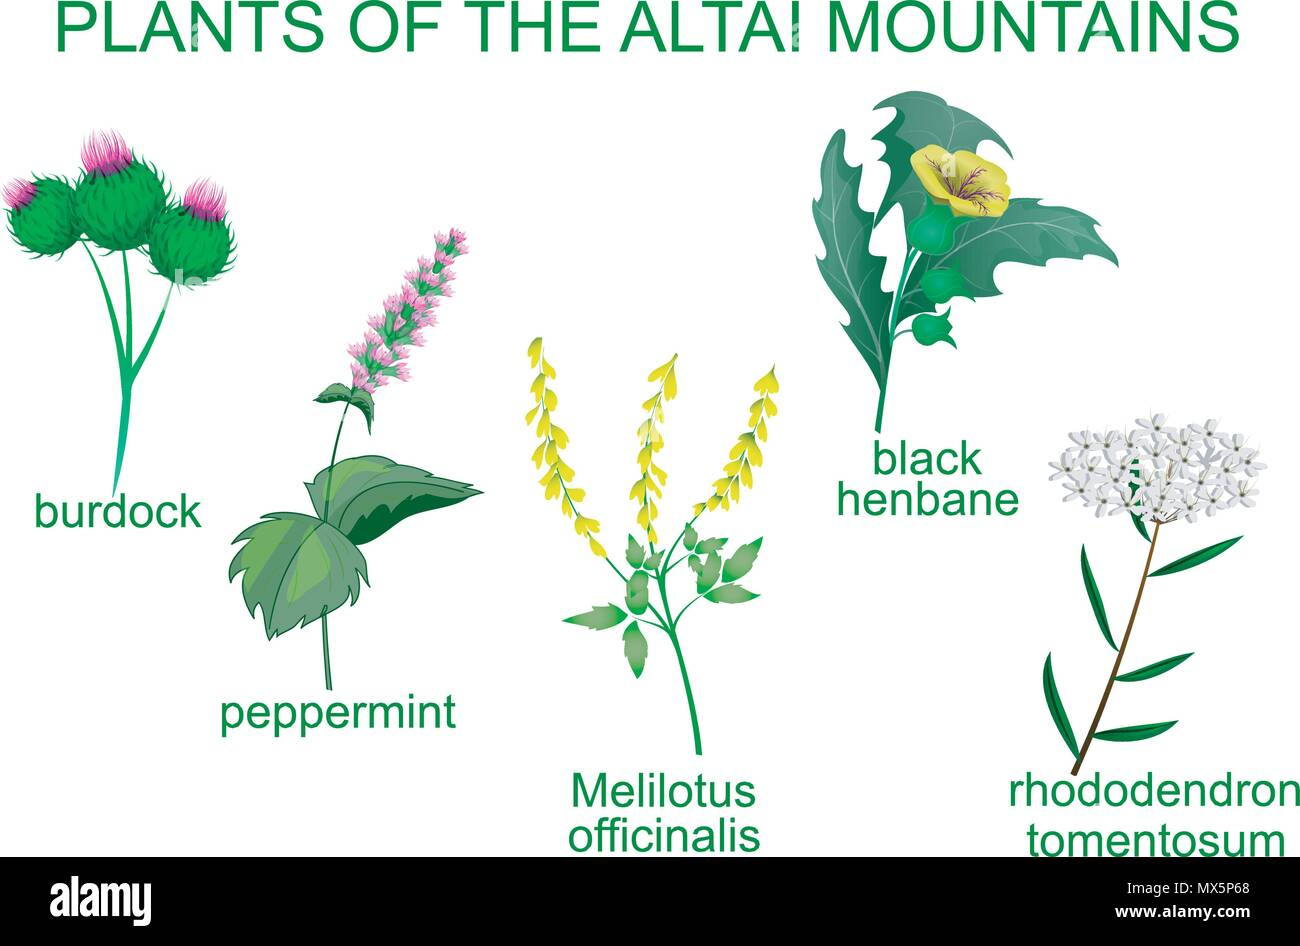 ILLUSTRATION OF MEDICINAL PLANTS OF THE ALTAI MOUNTAINS - Stock Vector